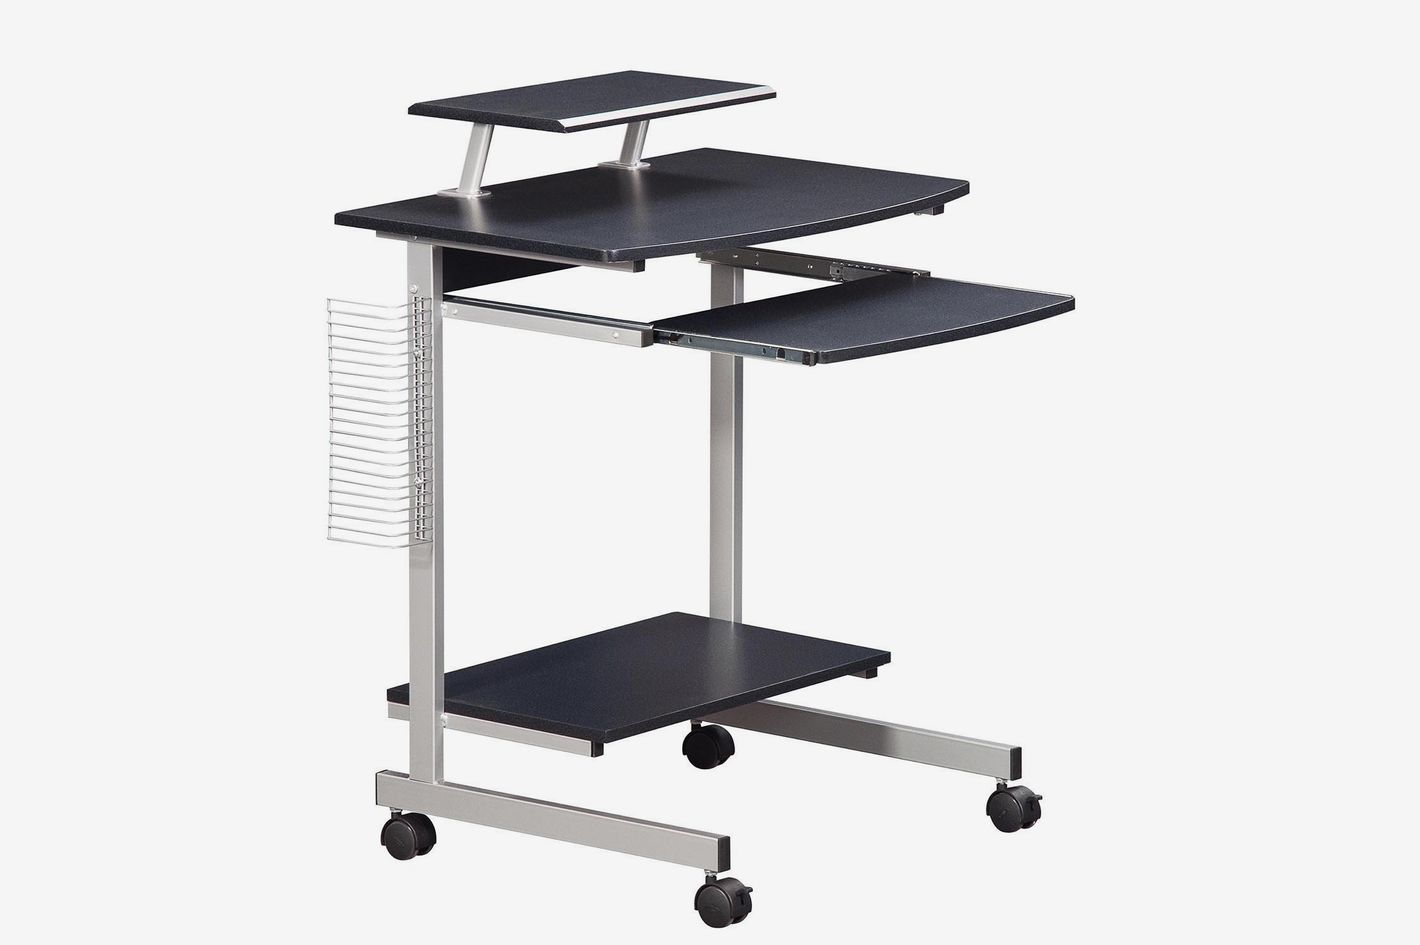 Techni Mobili Mobile & Compact Complete Computer Workstation Desk